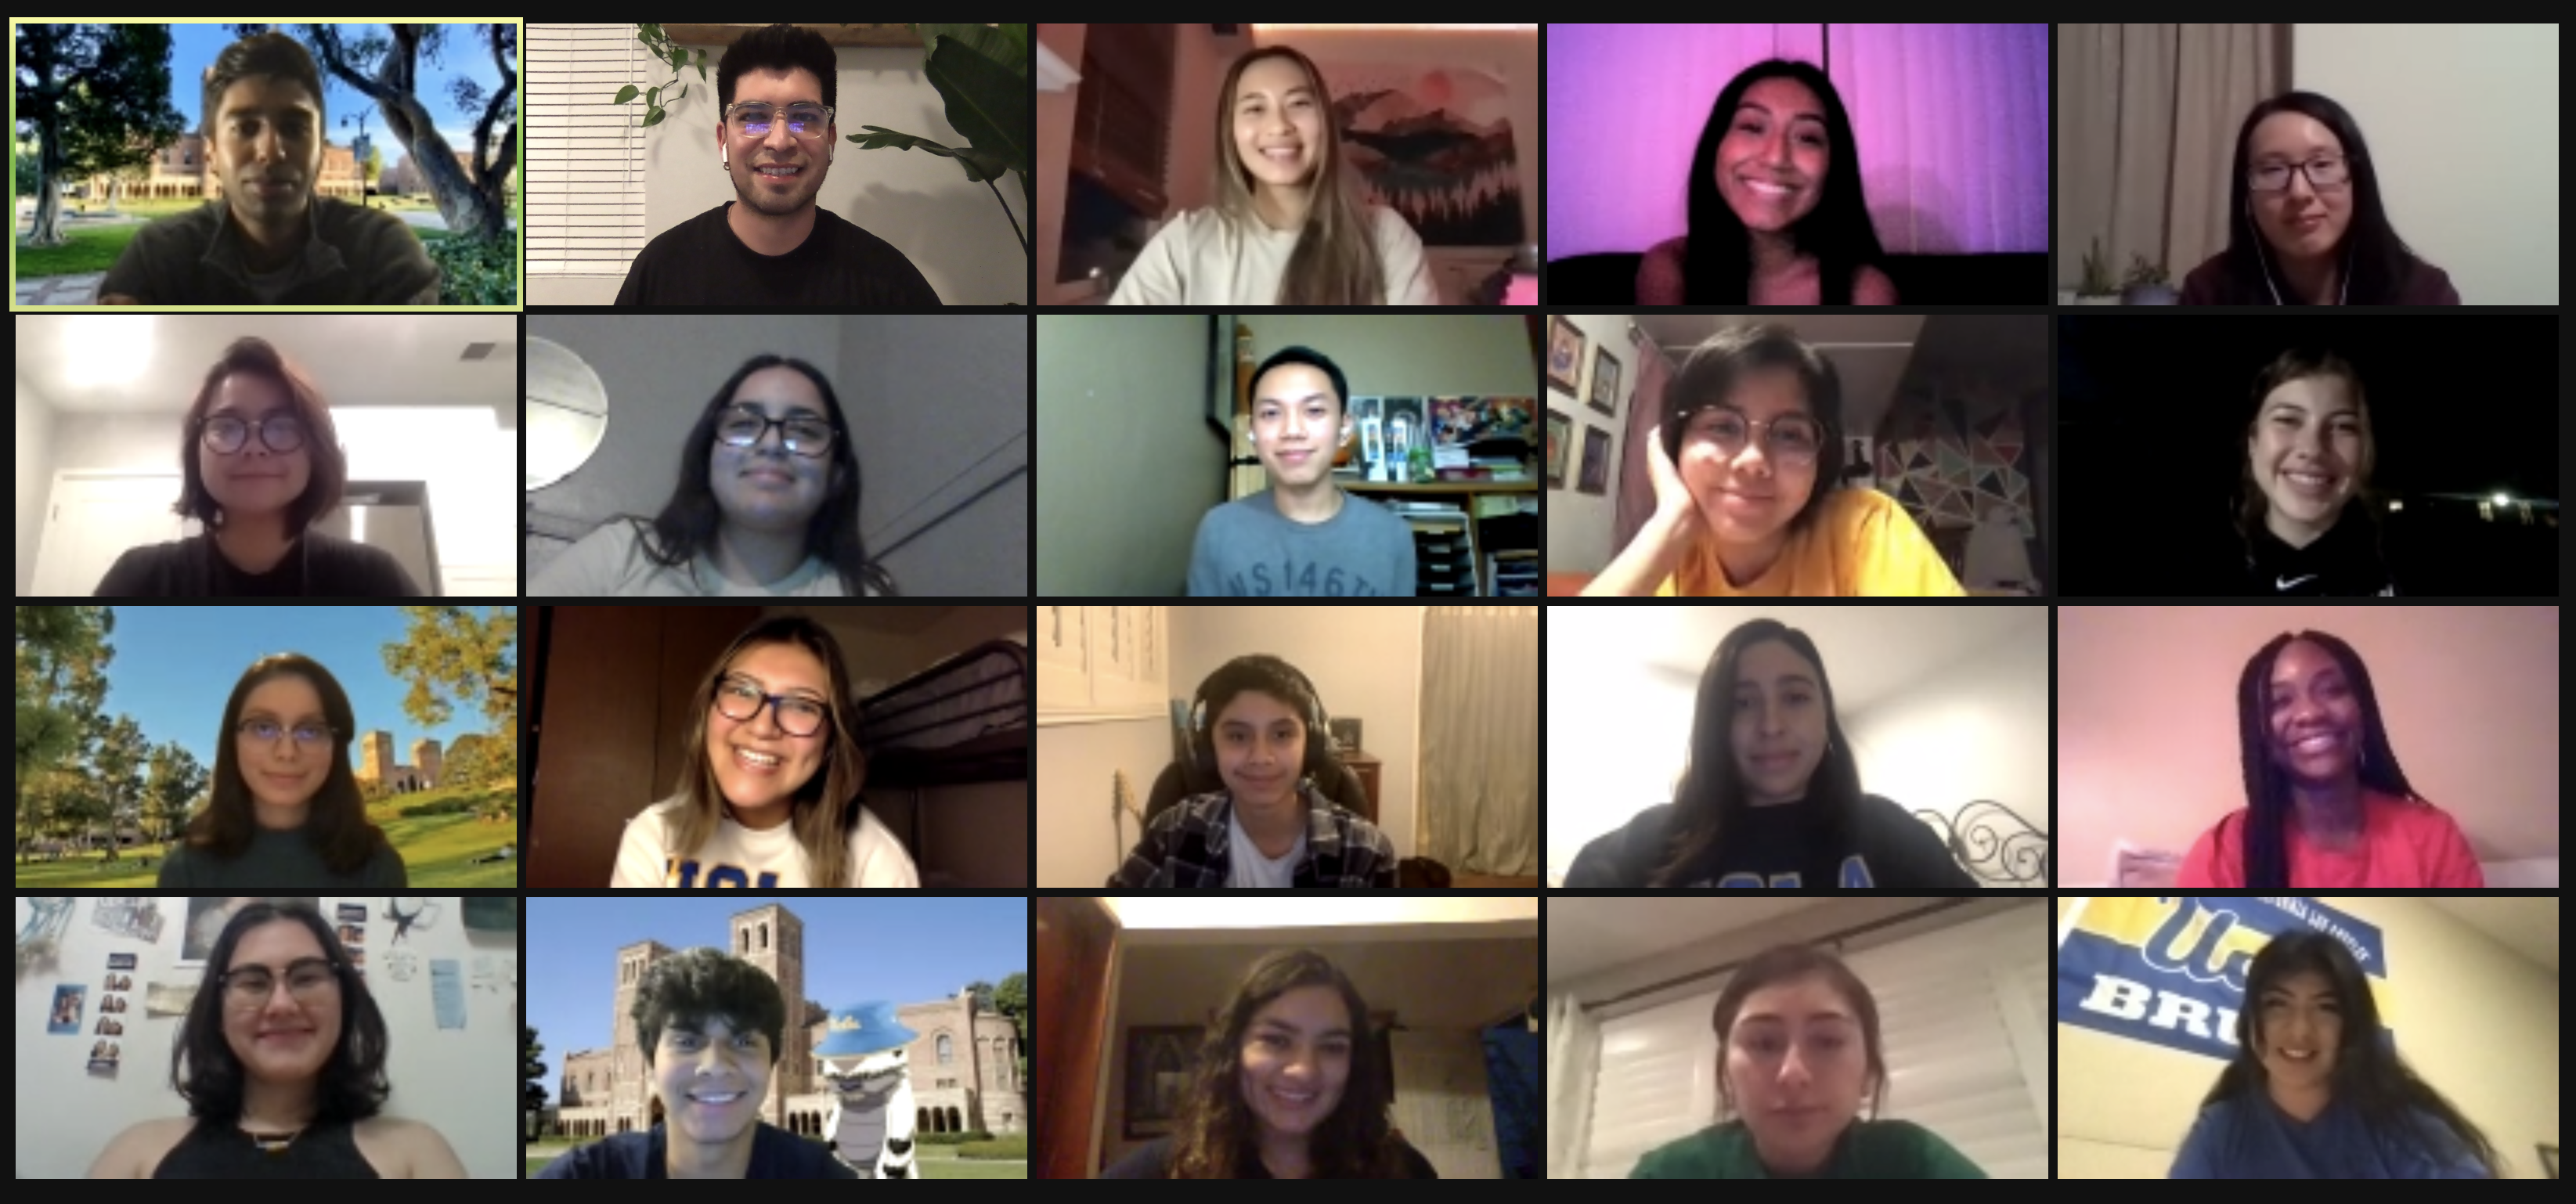 An image of the 2020 - 2021 Research Rookies Cohort taken over Zoom.